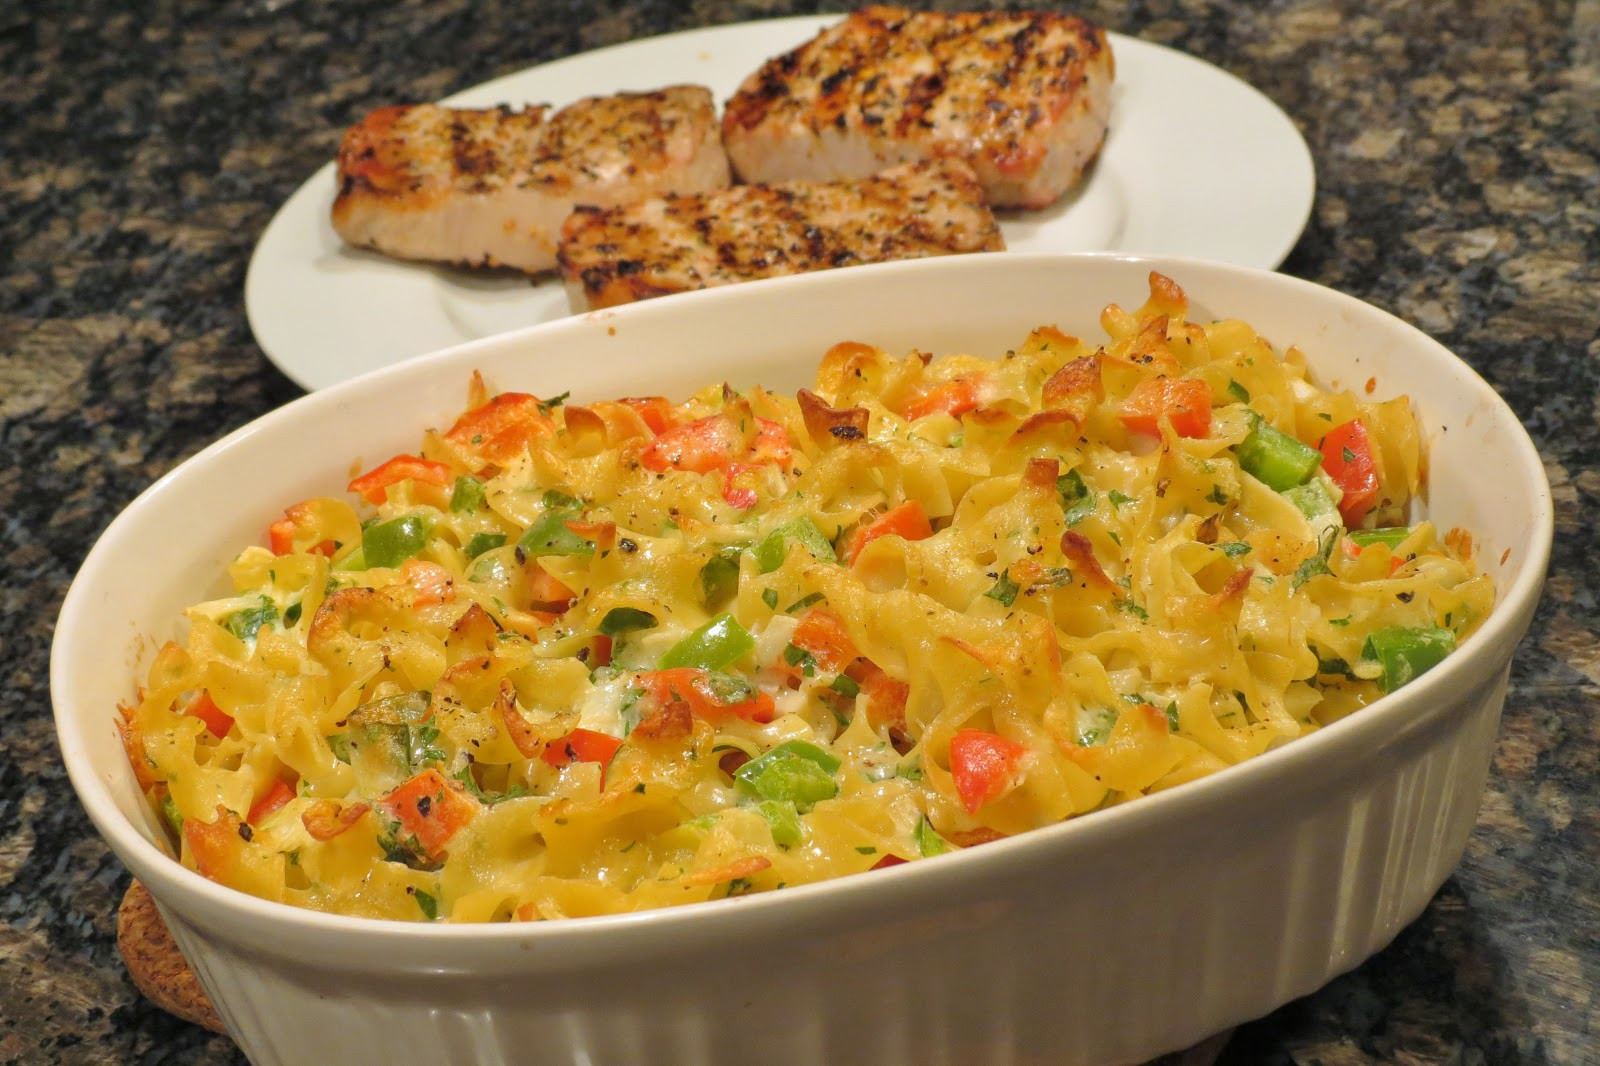 Egg Noodle Casserole Recipes Vegetarian  Dinner with the Welches Egg Noodle and Ve able Casserole